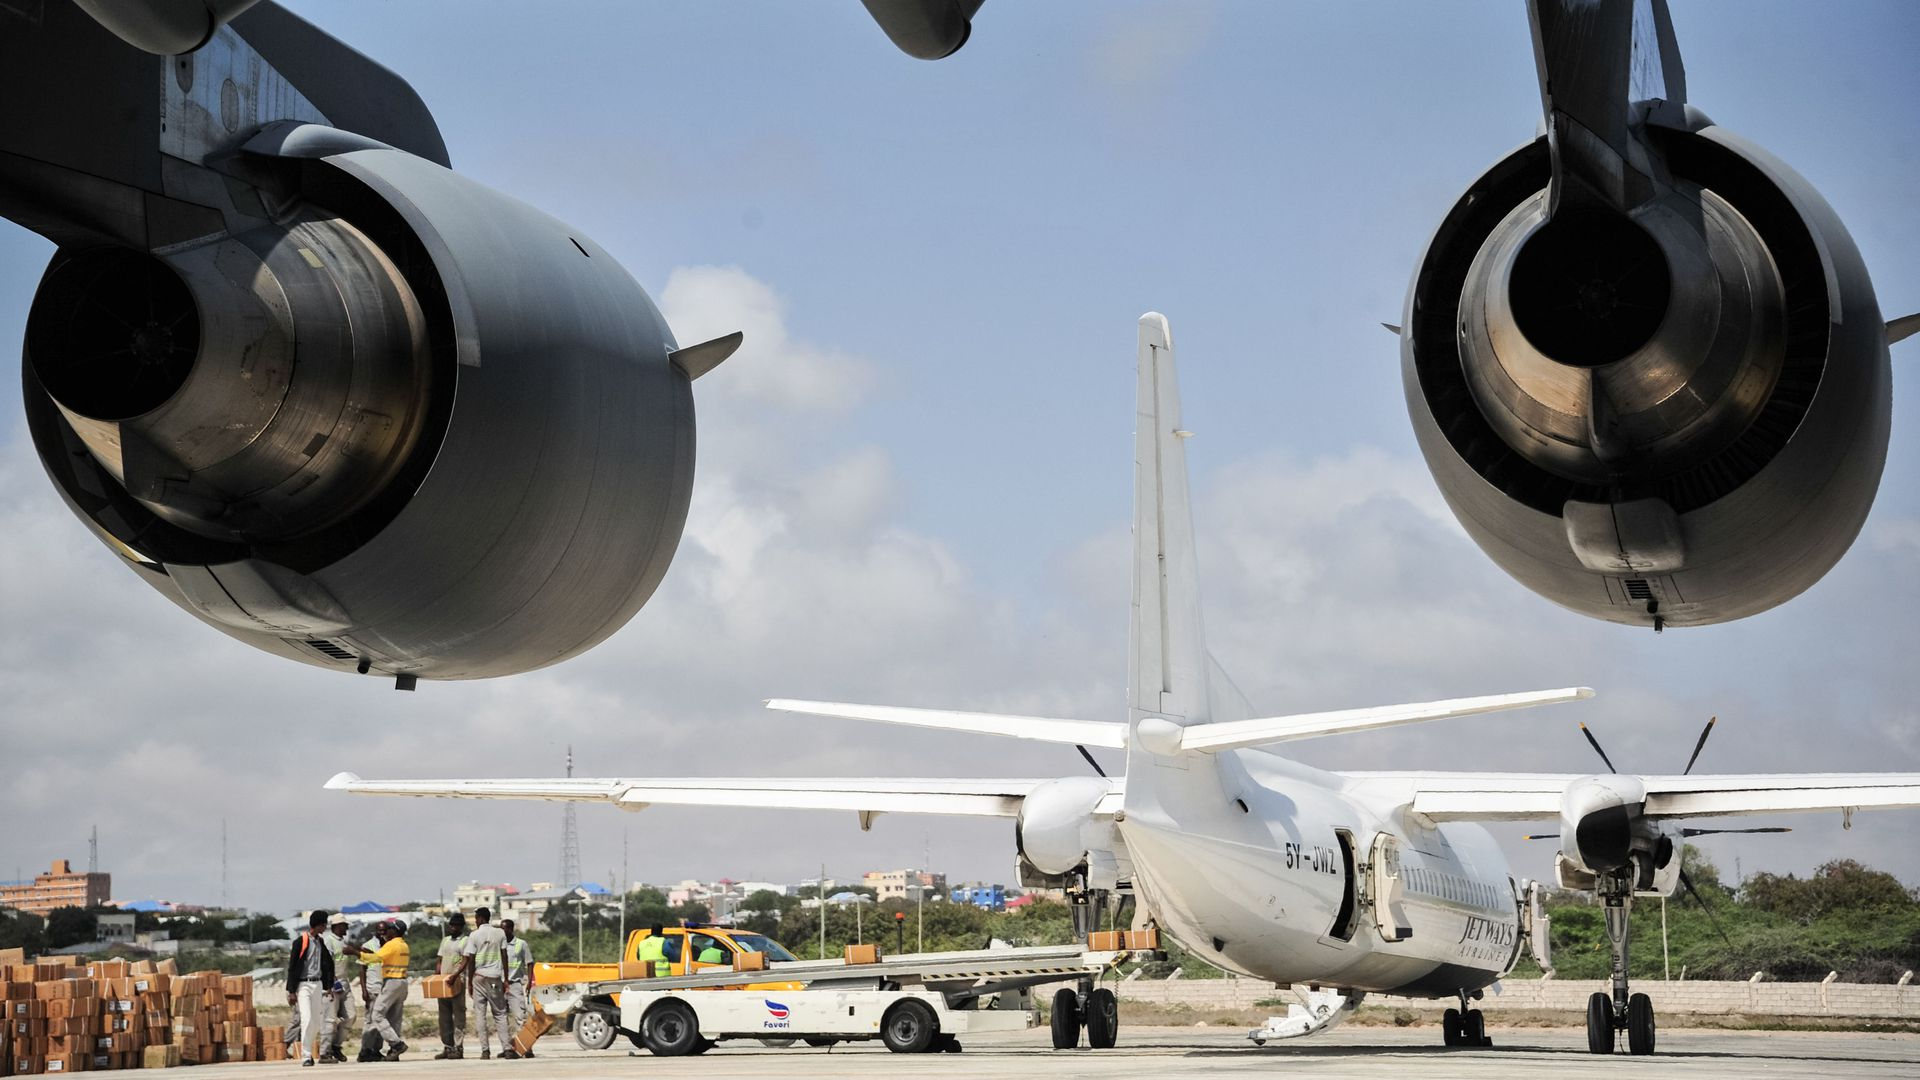 Two airplanes are visible at Aden Adde  international airport in Mogadishu.